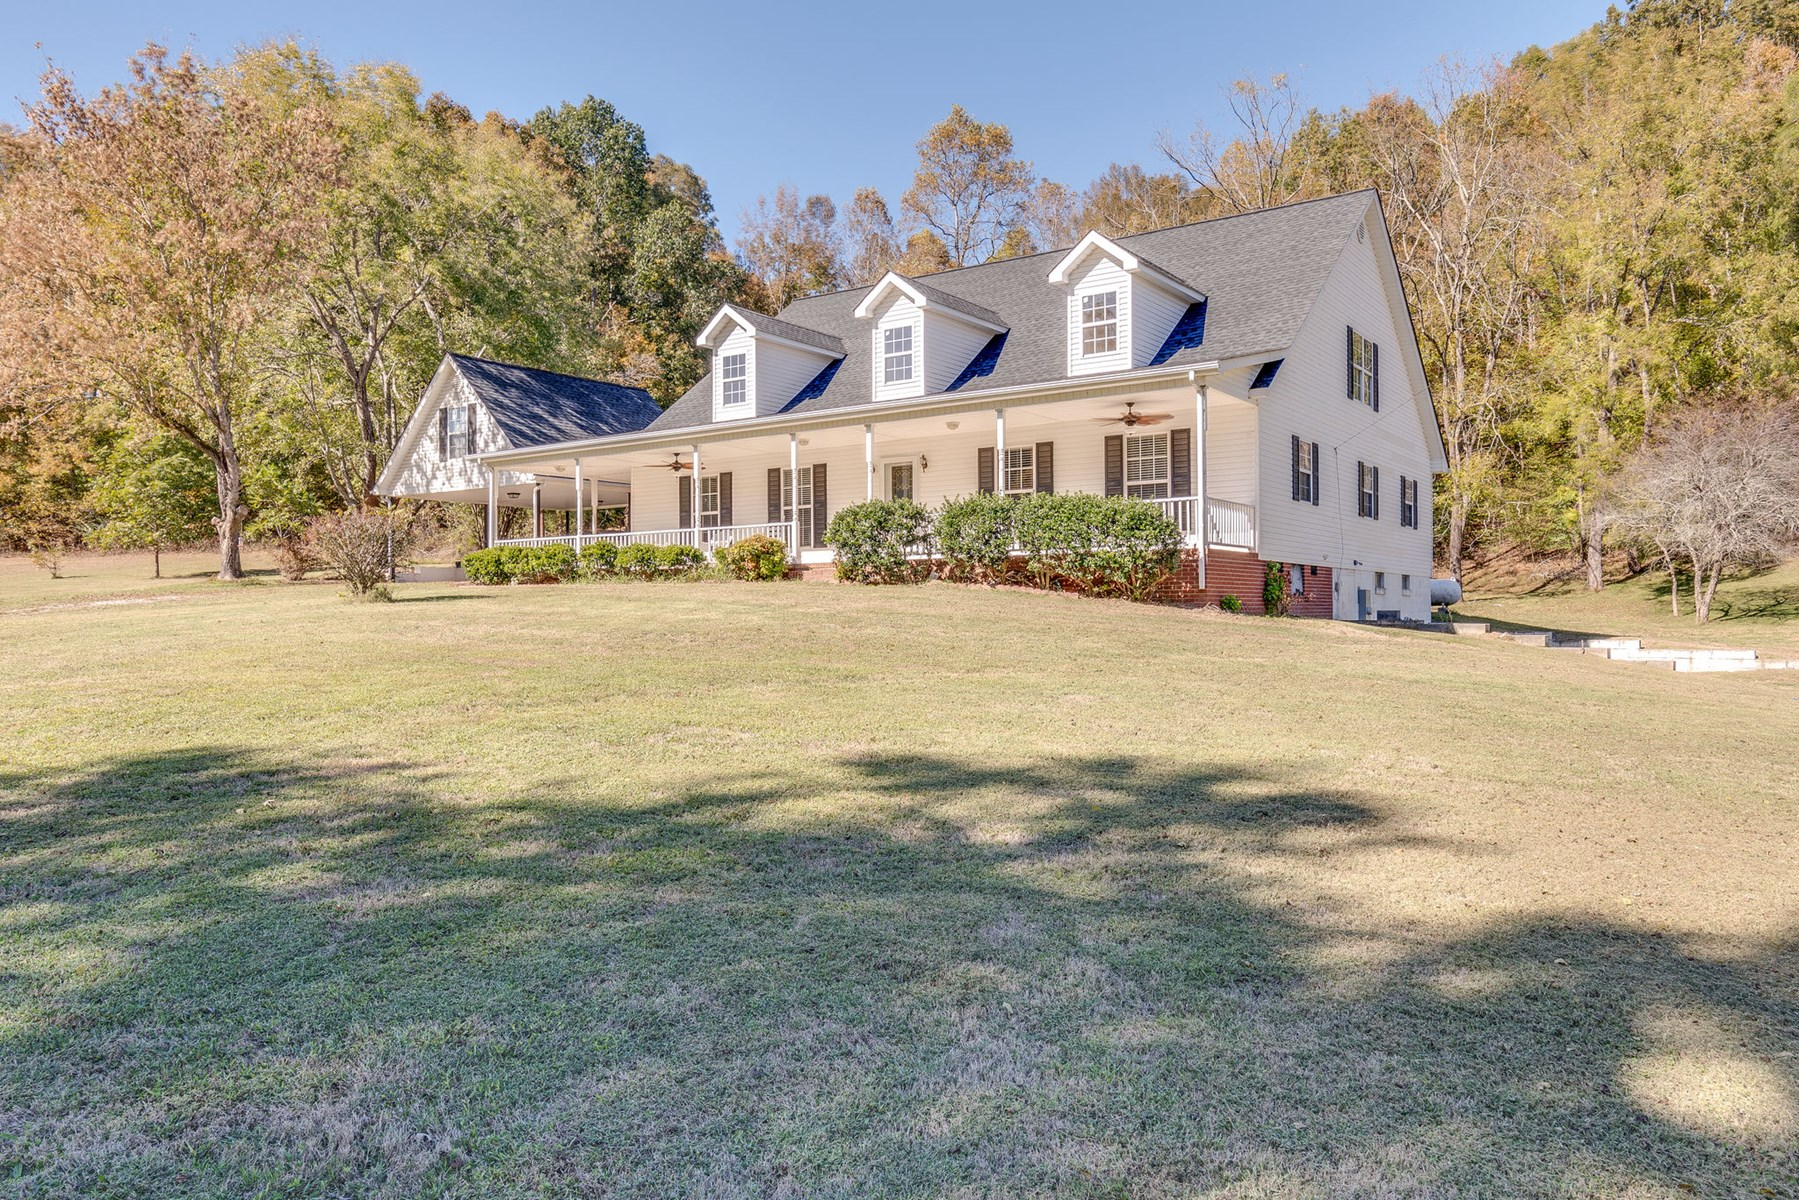 Country Home w/ Acreage for Sale in Mt. Pleasant, Tennessee